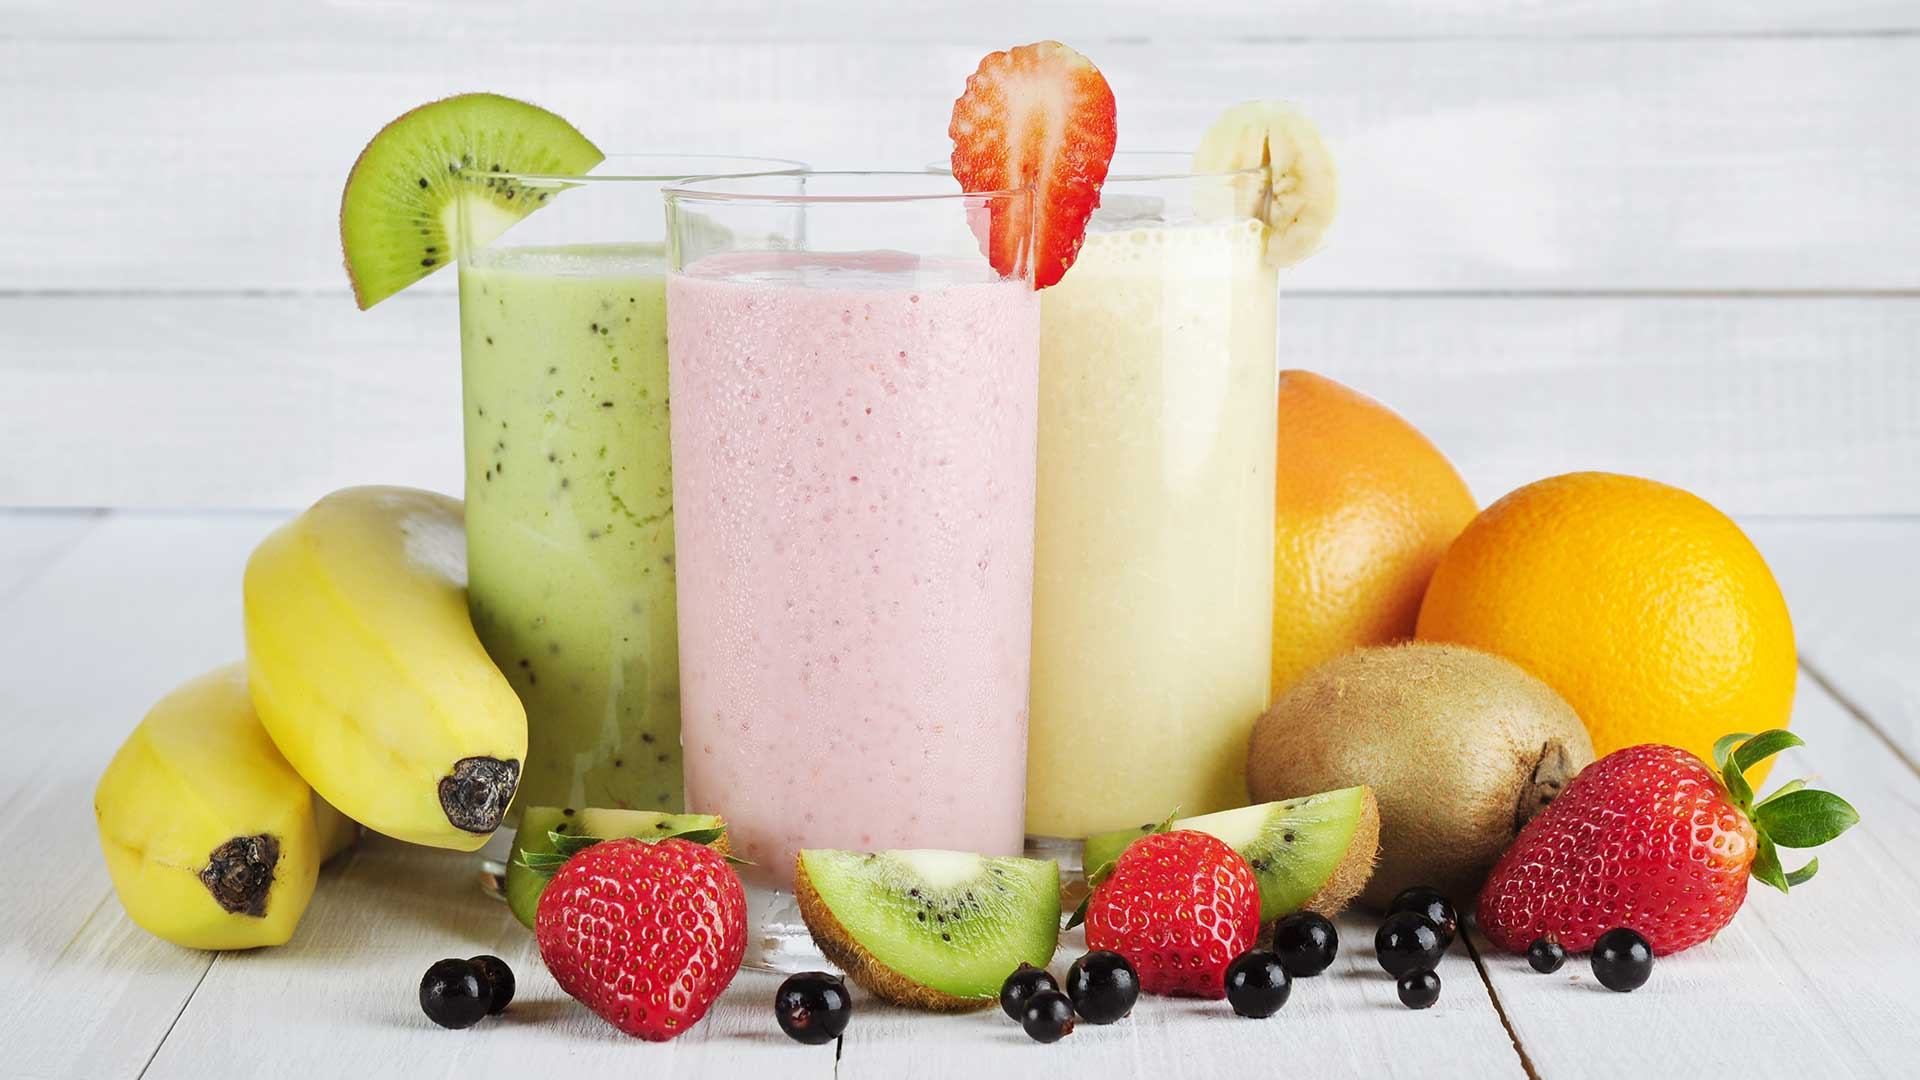 kiwi, strawberry and banana smoothies in a glass with fruits around them on a white wooden table